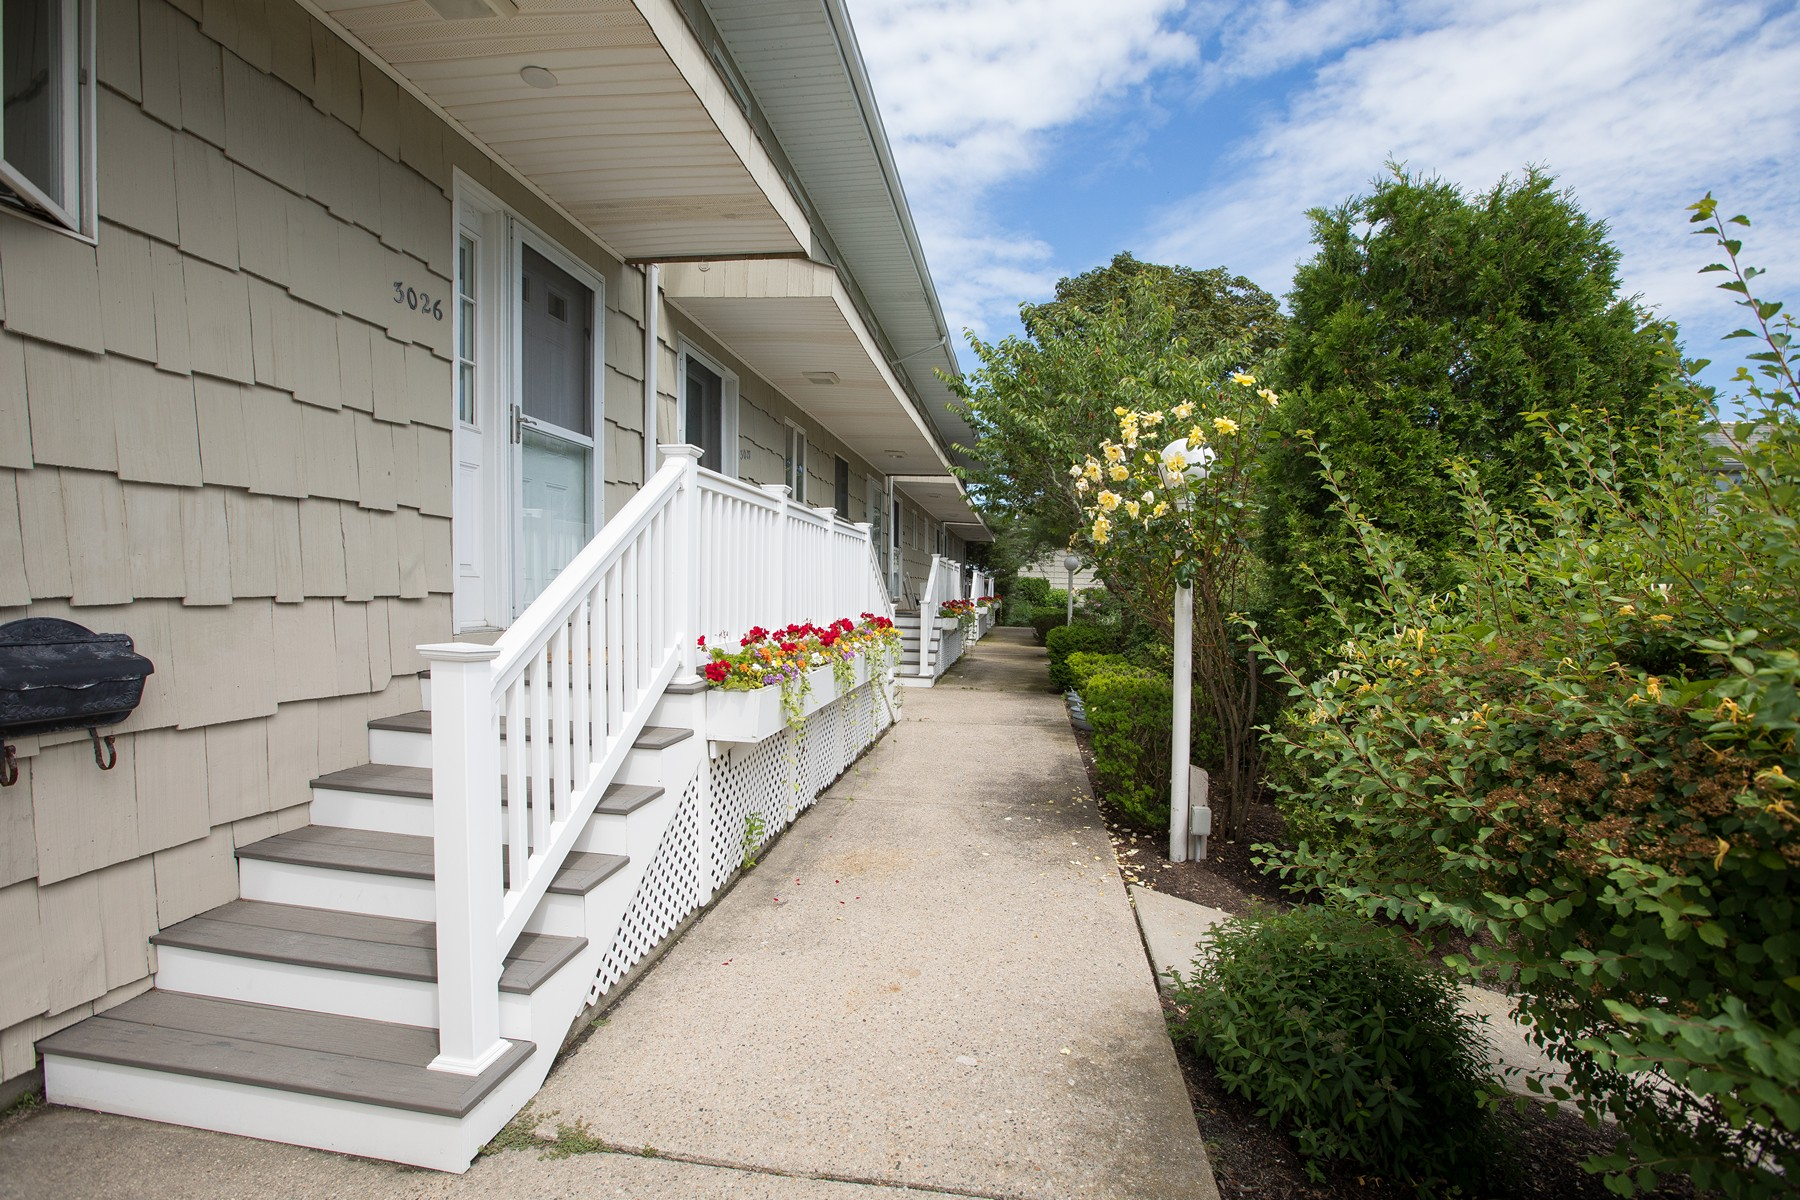 condominiums for Sale at 3026 Mitchell Rd , Westhampton Bch, NY 11978 3026 Mitchell Rd Westhampton Beach, New York 11978 United States